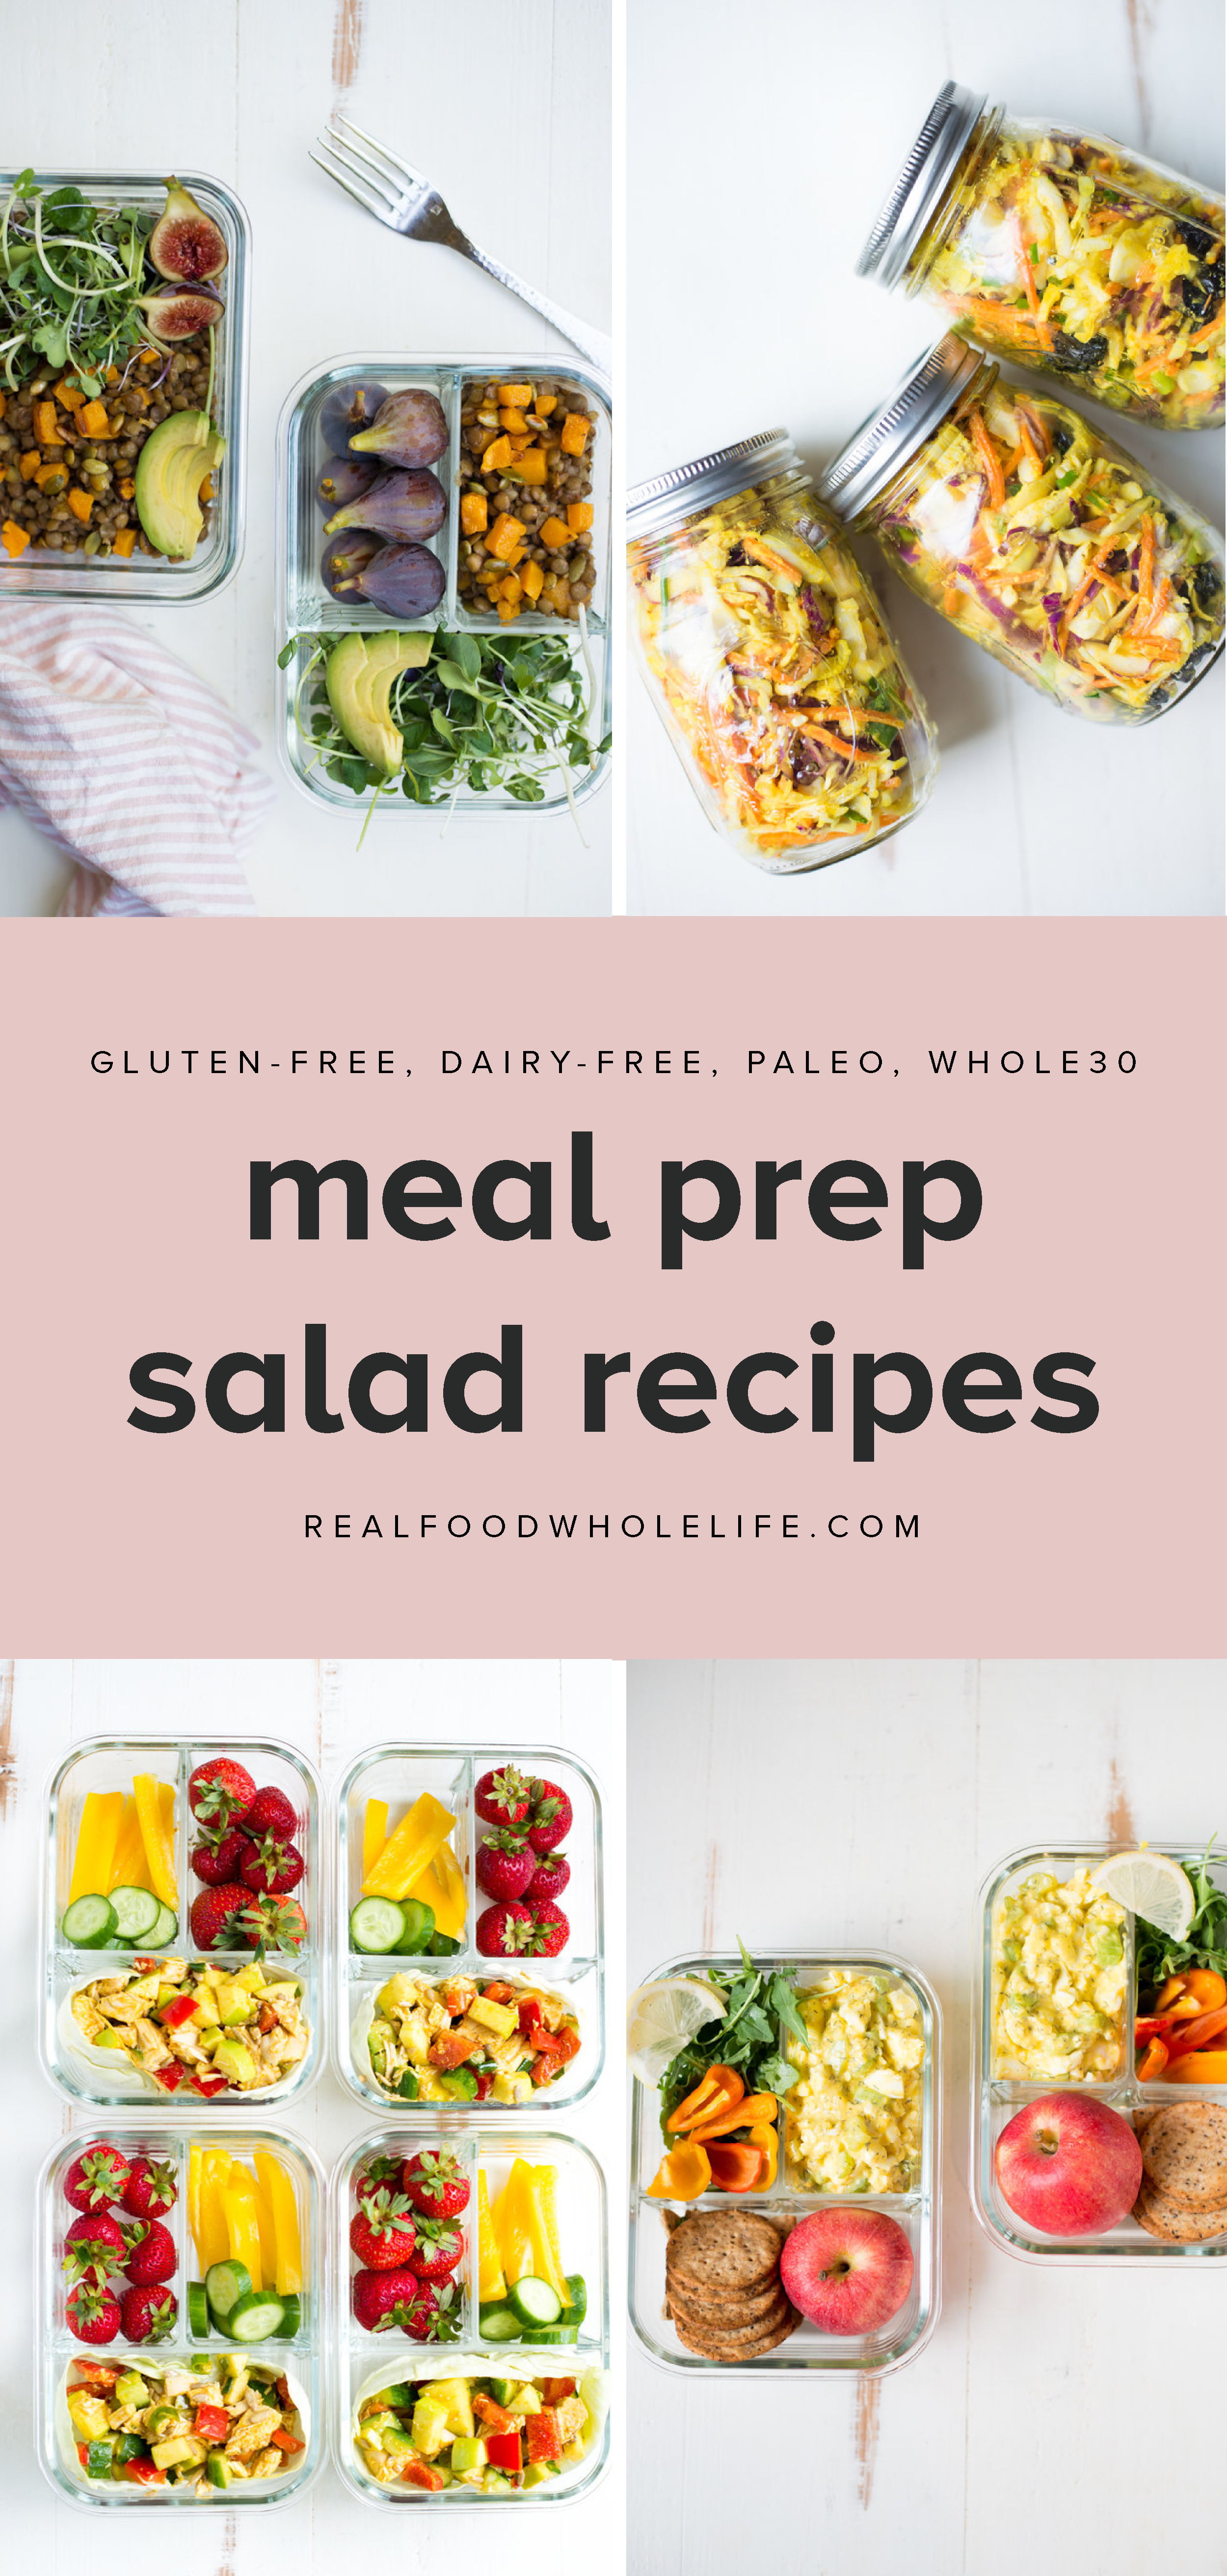 A collection of 10 healthy salad recipes from Real Food Whole Life that are perfect for meal prep. #realfoodwholelife #recipe #healthy #salad #glutenfree #dairyfree #paleo #whole30 #vegetarian